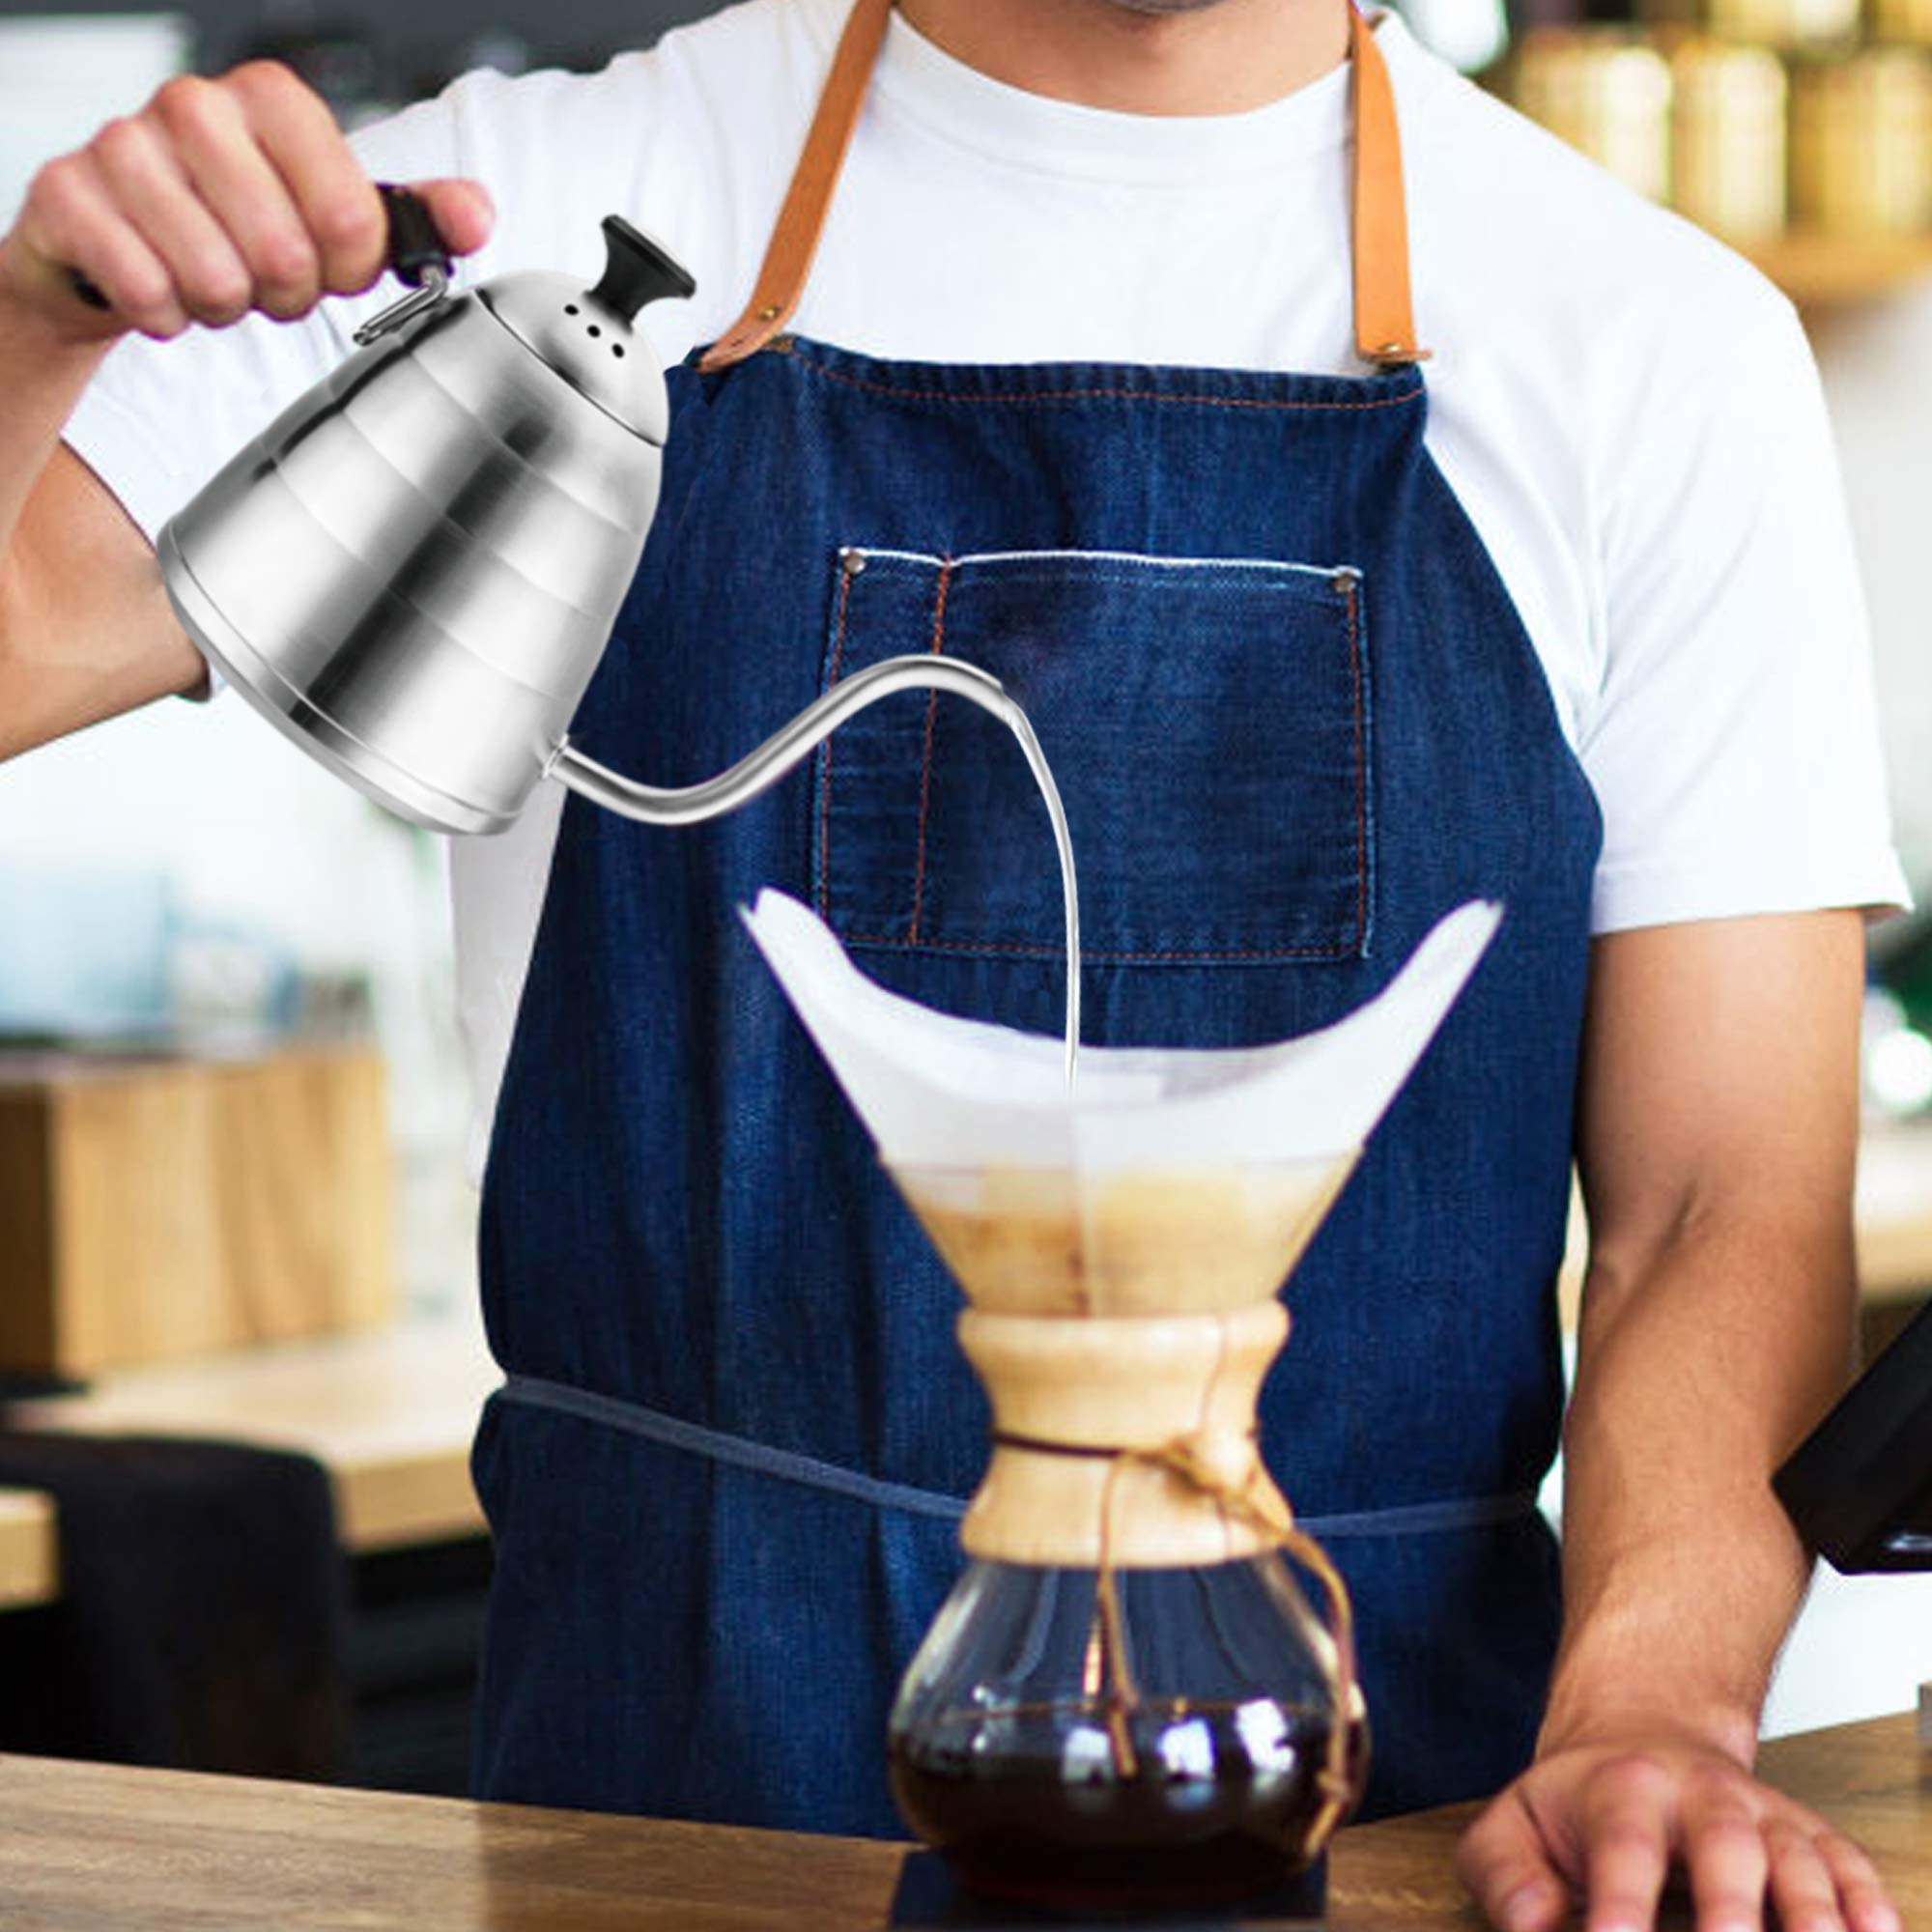 ENLOY Gooseneck Pour Over Coffee Kettle, Coffee Kettle Use for Drip Coffee and Tea, Stainless Steel Pour Over Kettle with Fixed Thermometer for Exact Temperature (34floz) by ENLOY (Image #6)